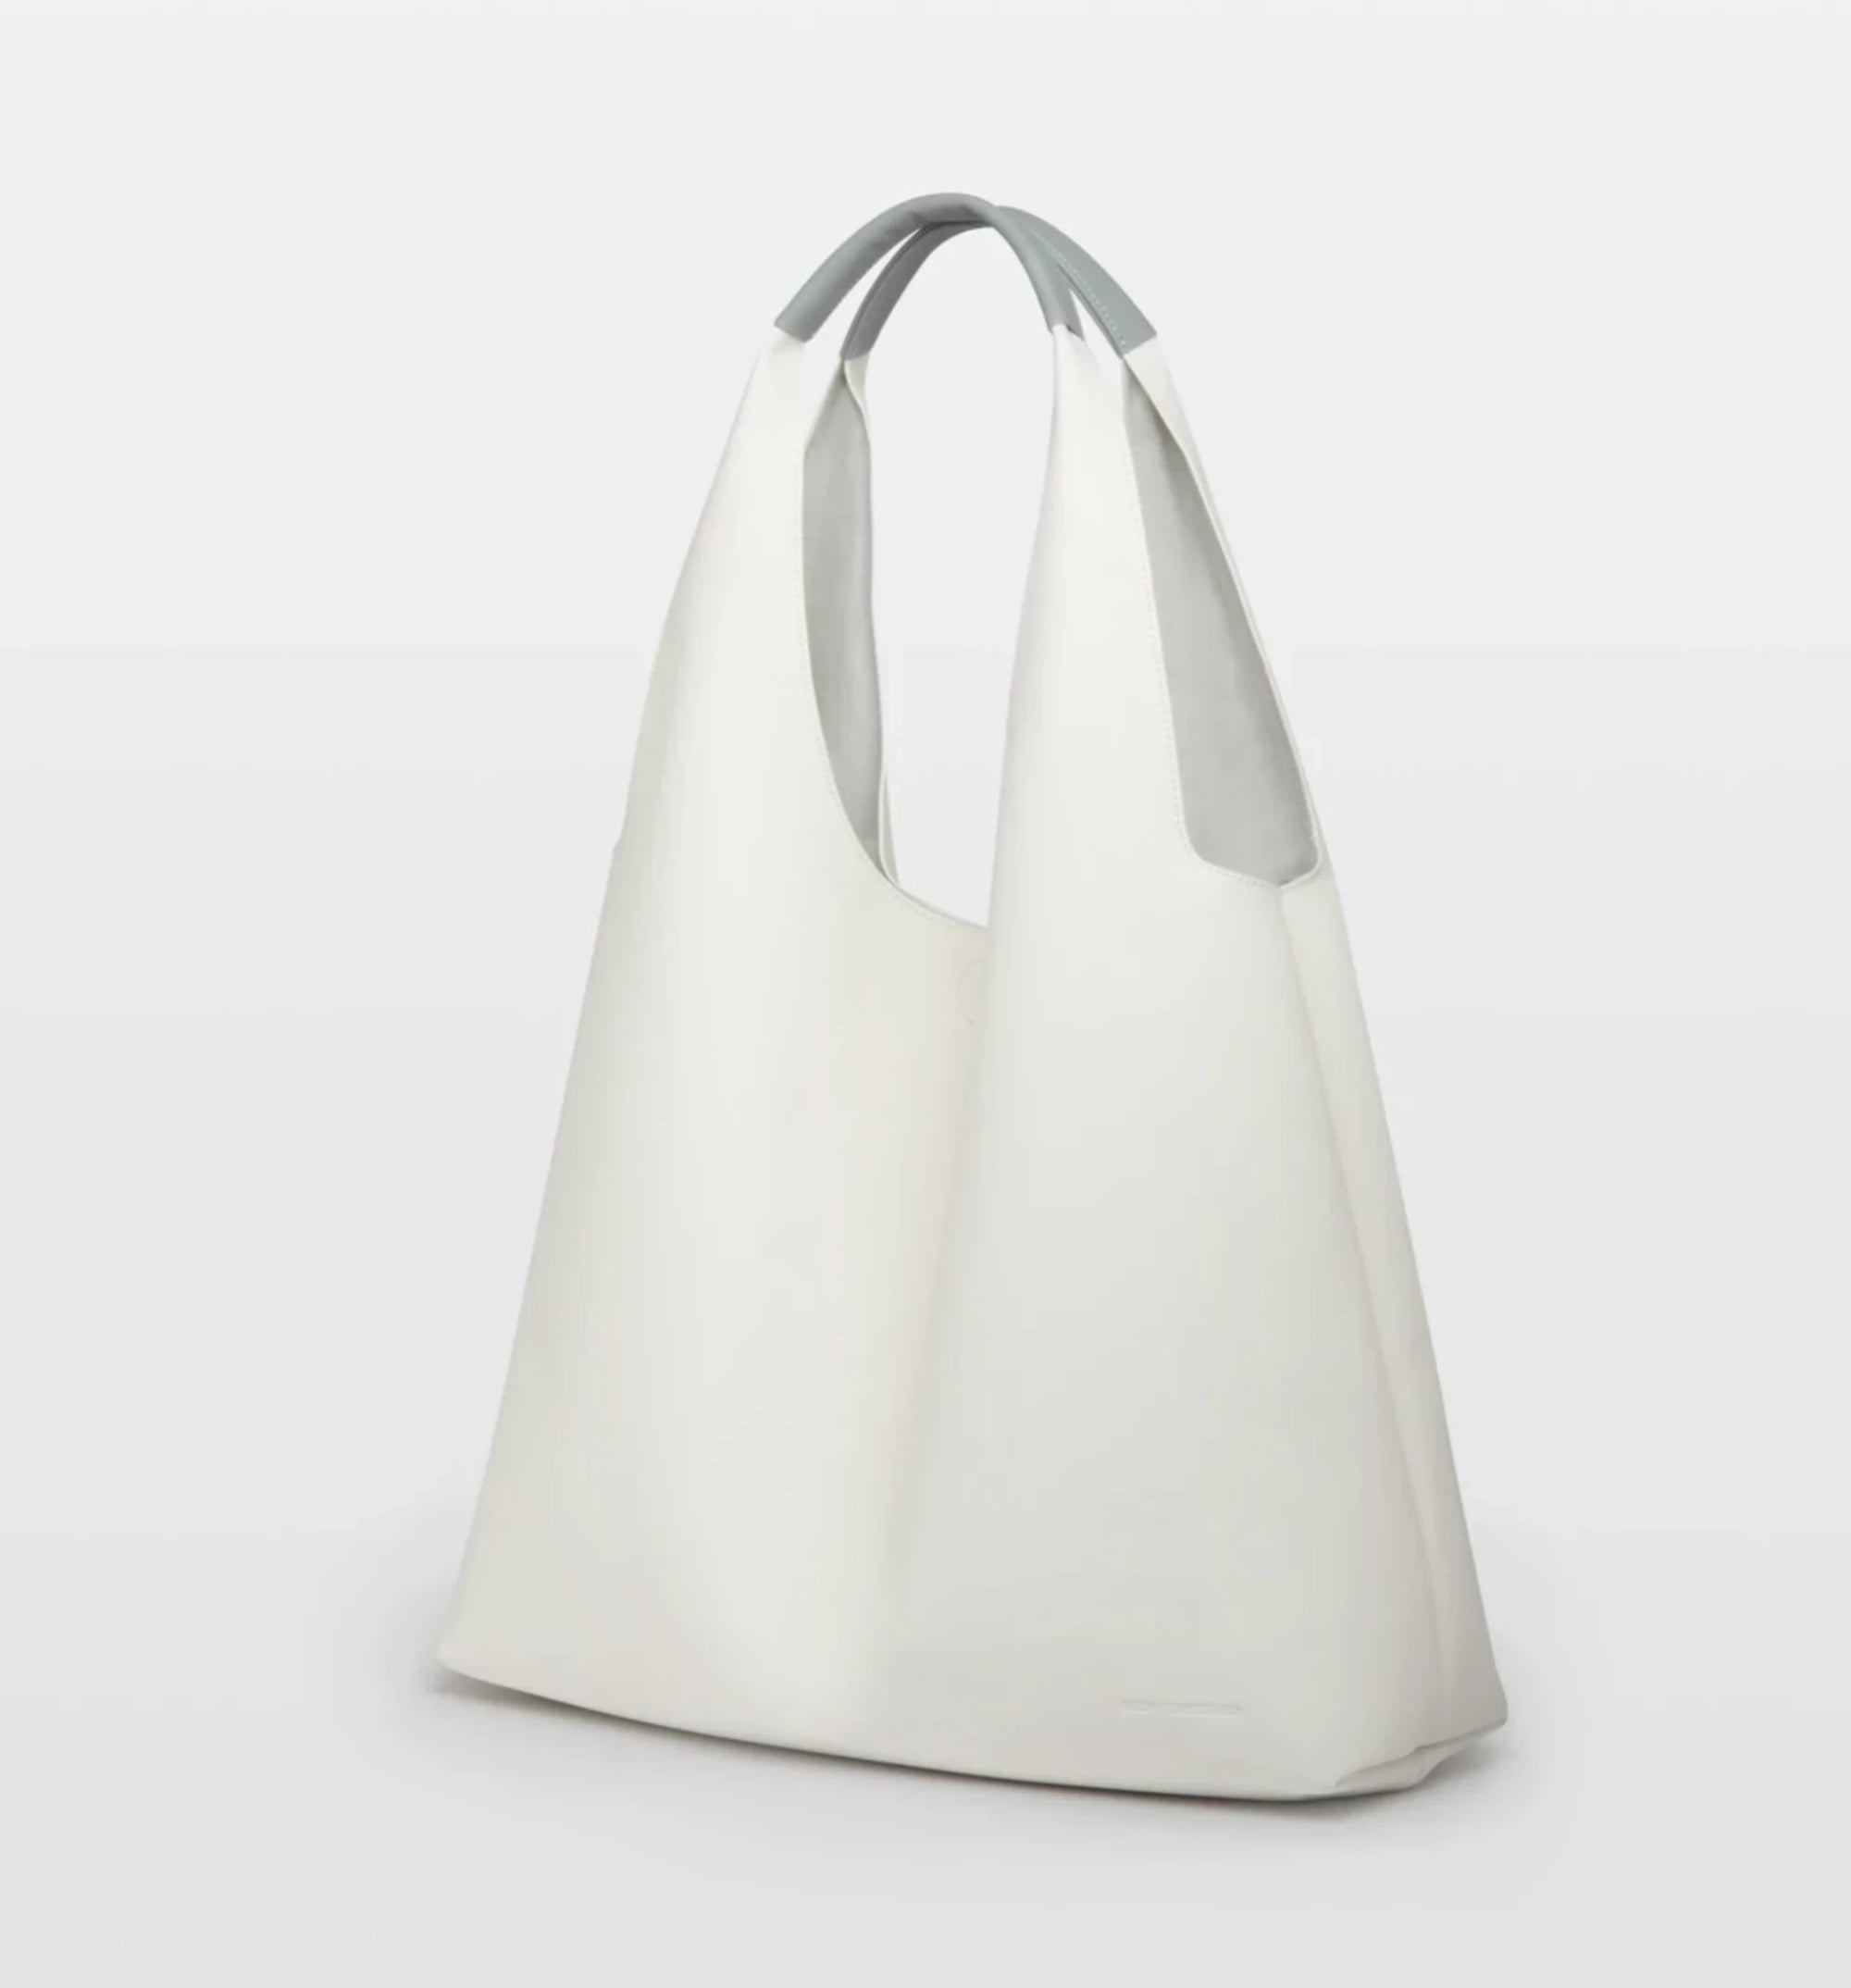 AVA Shopping Tote Bag- White